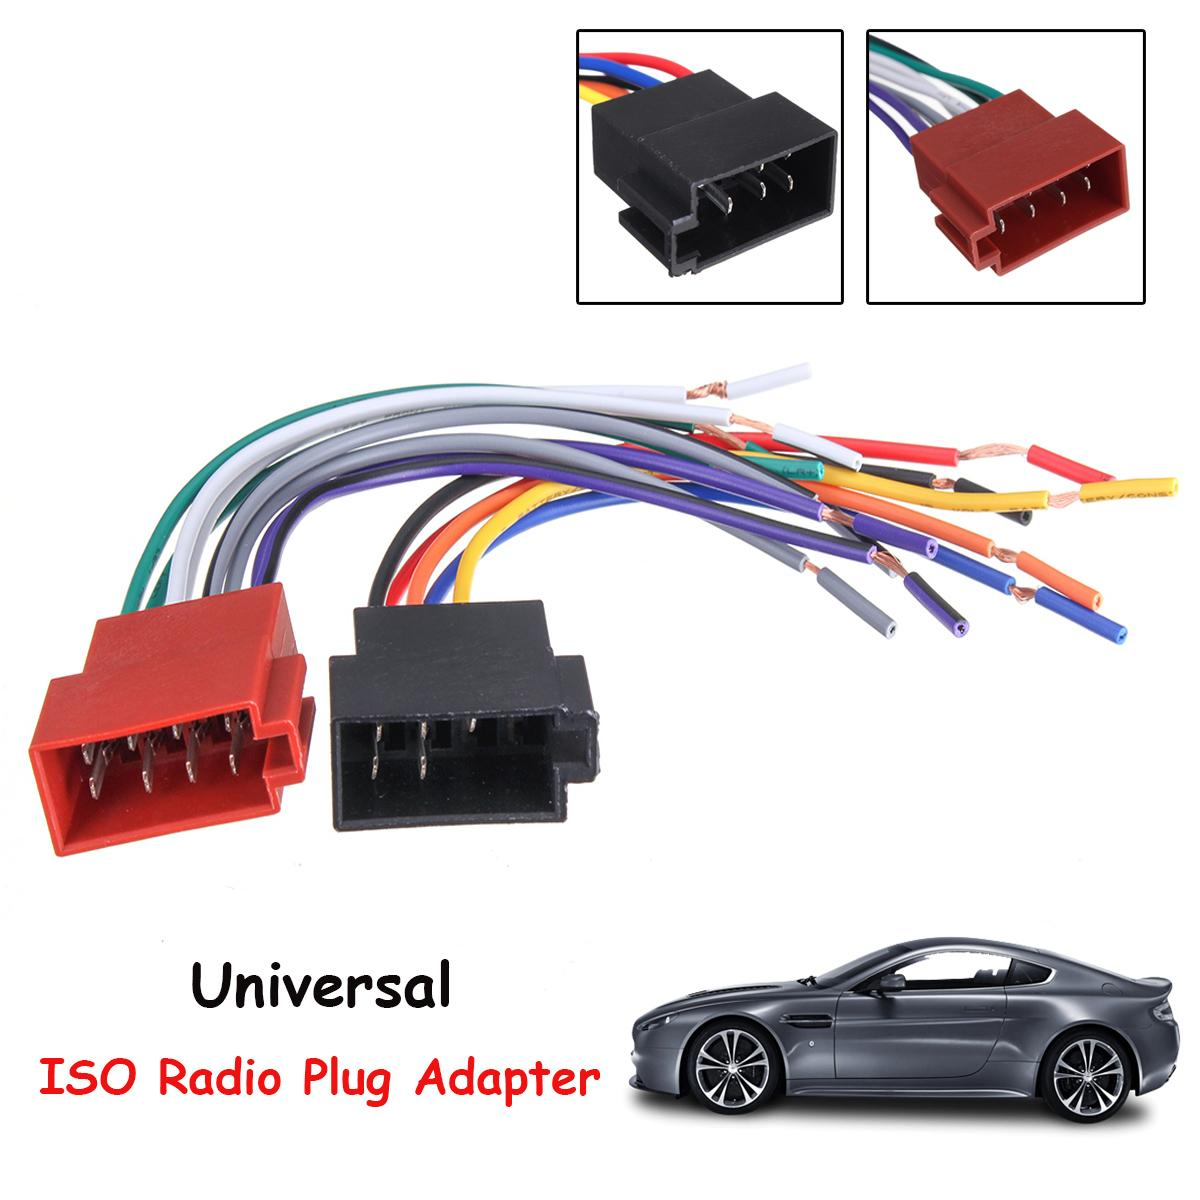 Universal Car Stereo Female ISO Radio Plug Adapter Wiring Cable Stereo Harness